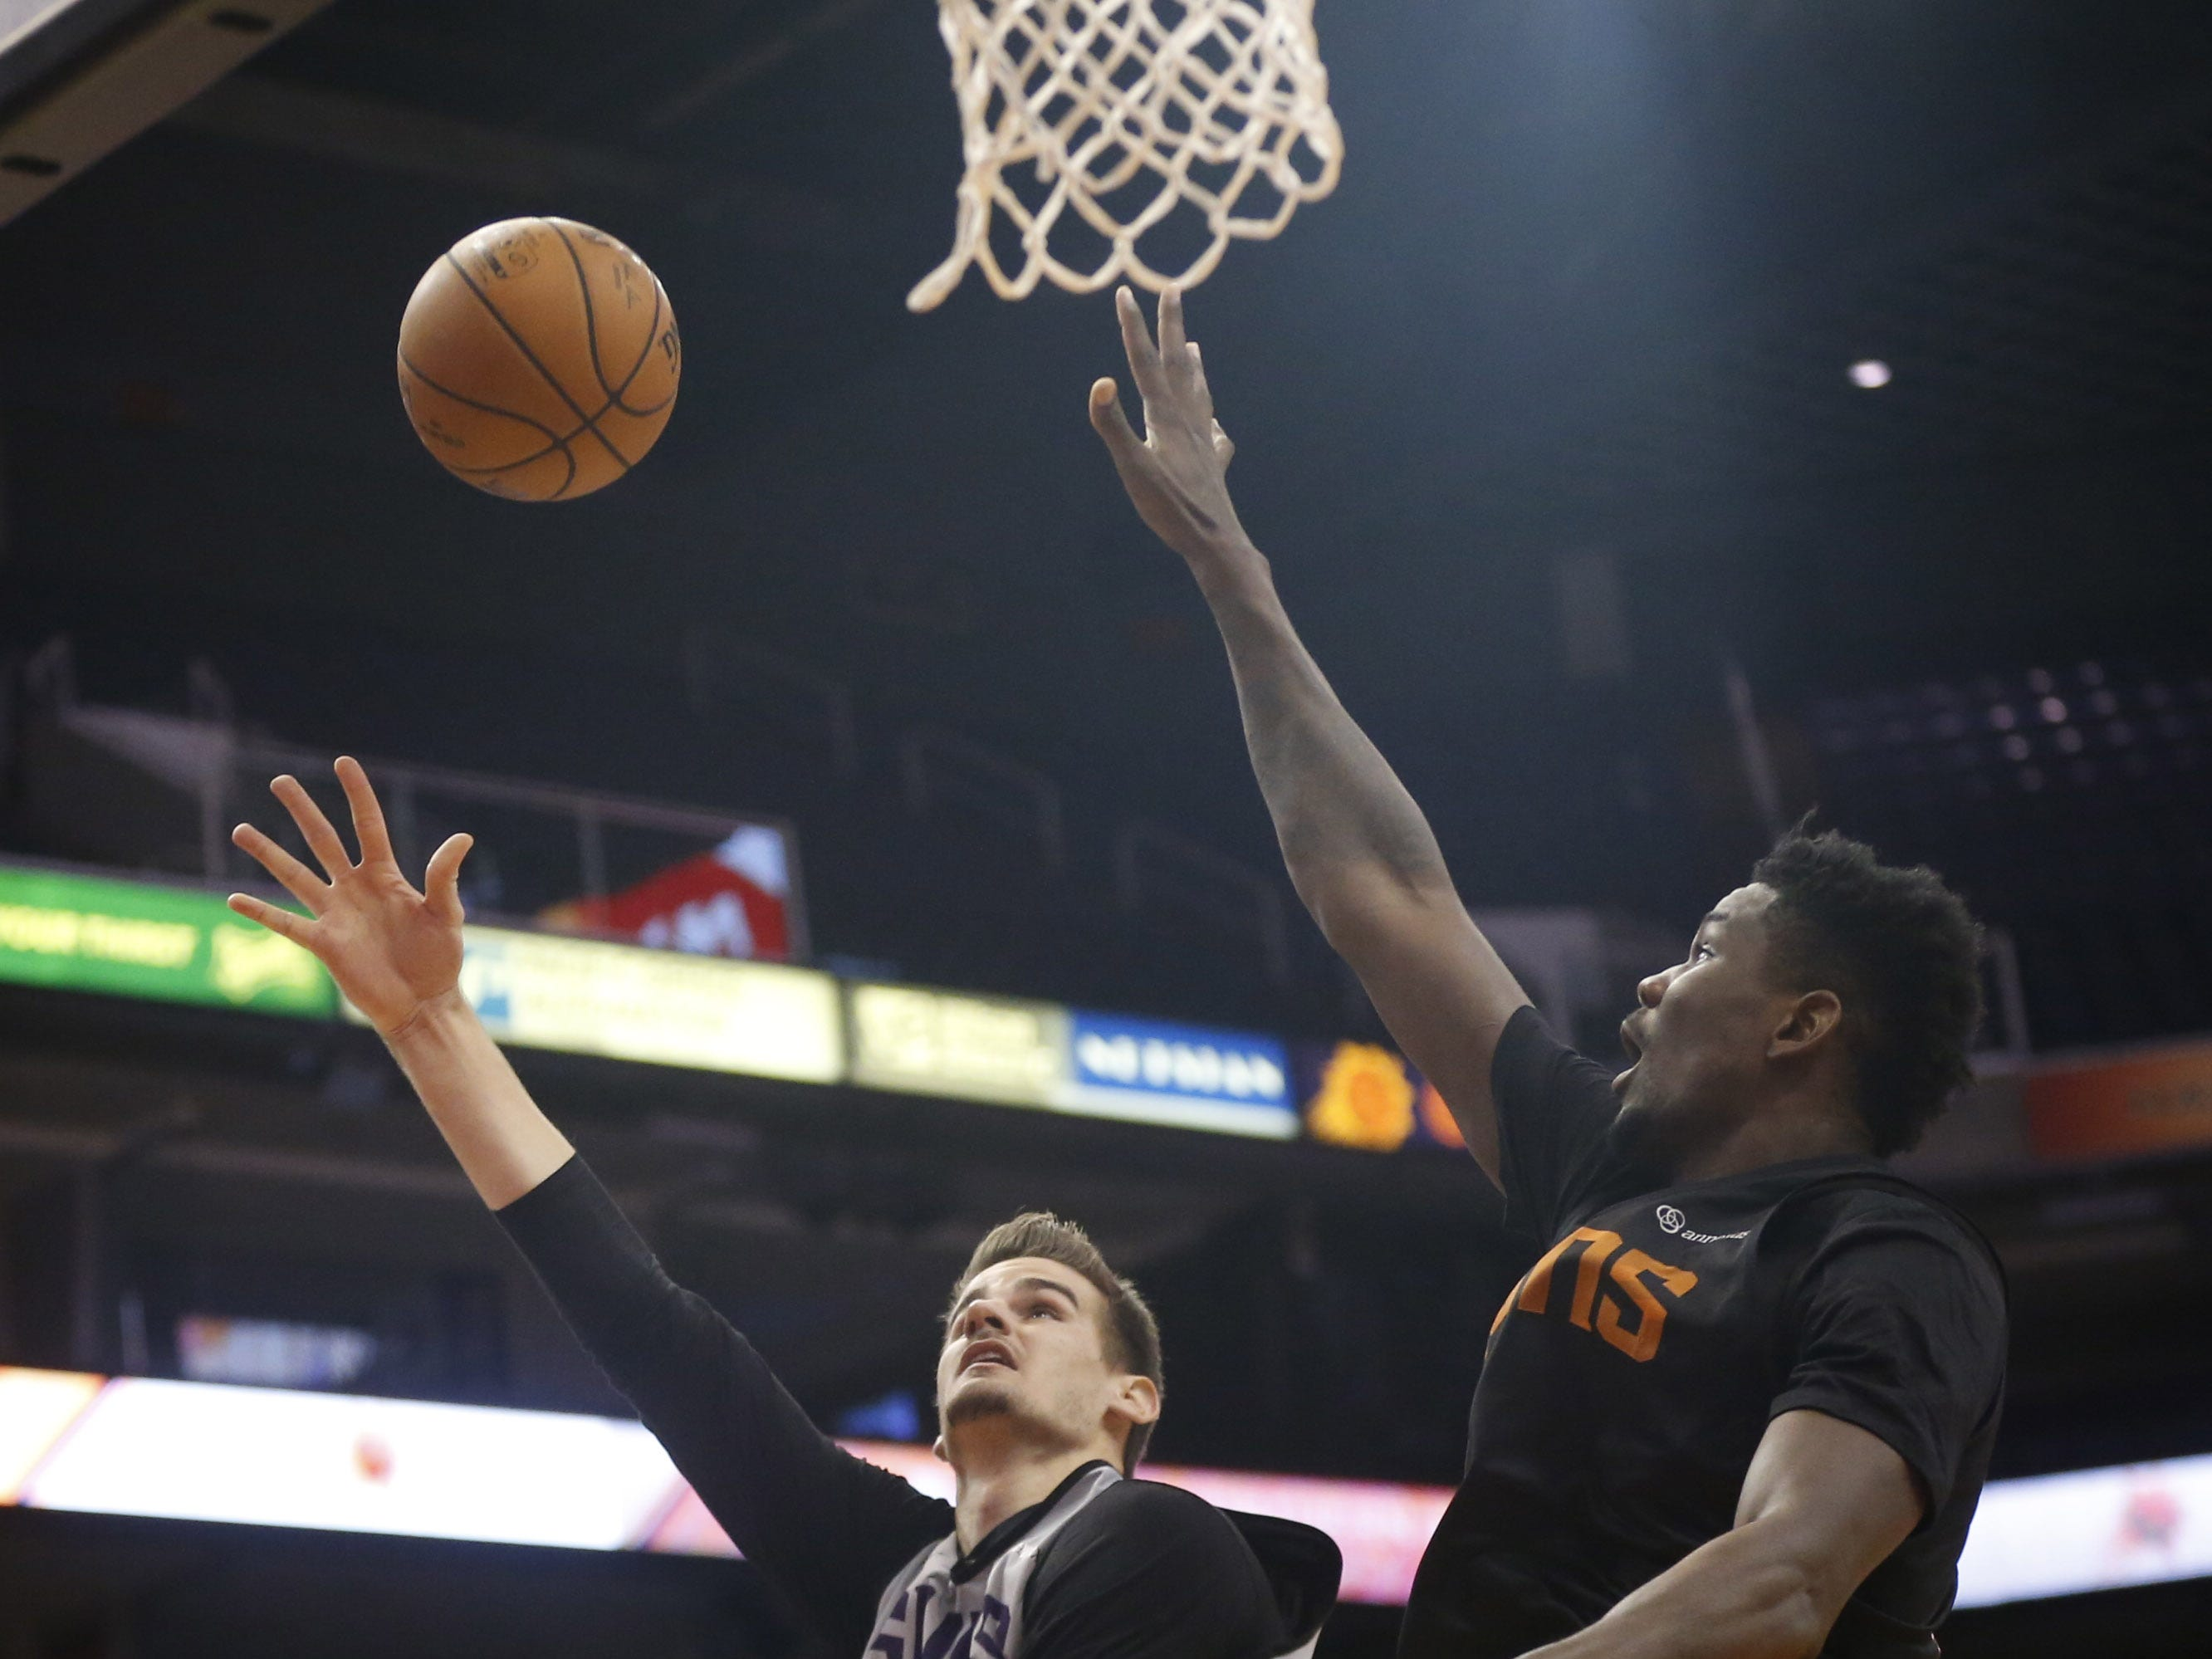 Suns Dragan Bender shoots a layup against Deandre Ayton during an Open Practice at Talking Stick Resort Arena in Phoenix, Ariz. on Sept. 29, 2018.